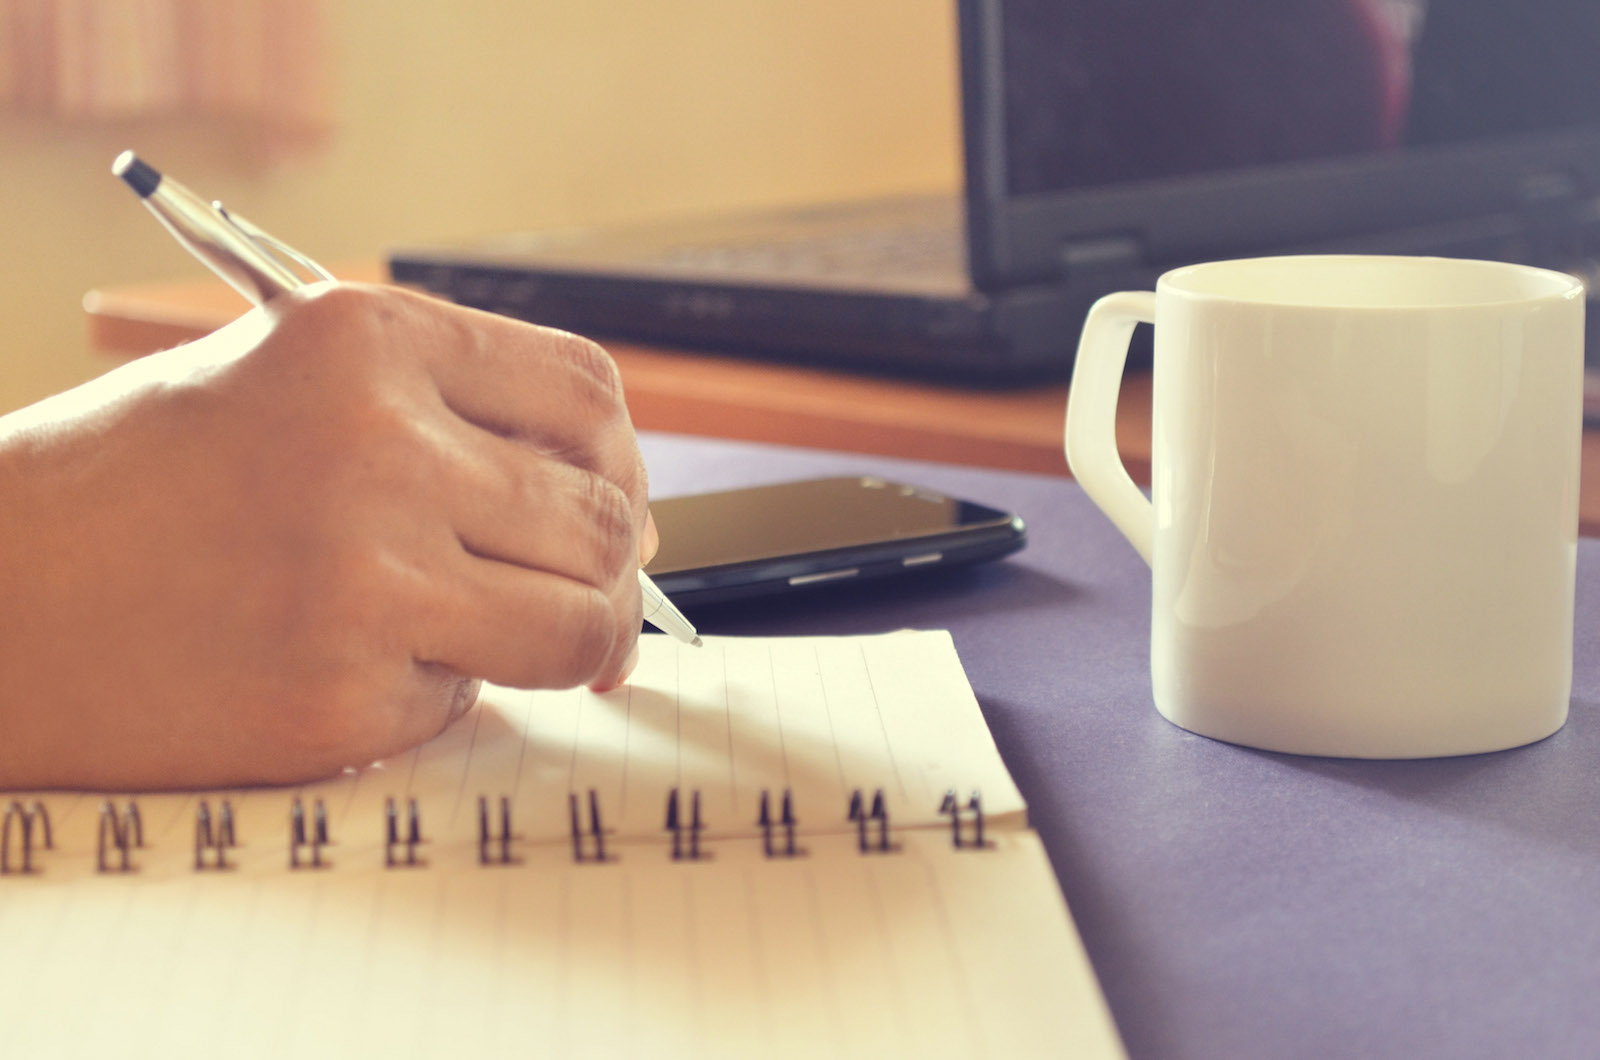 50+ Internship Interview Questions to Find Great Talent